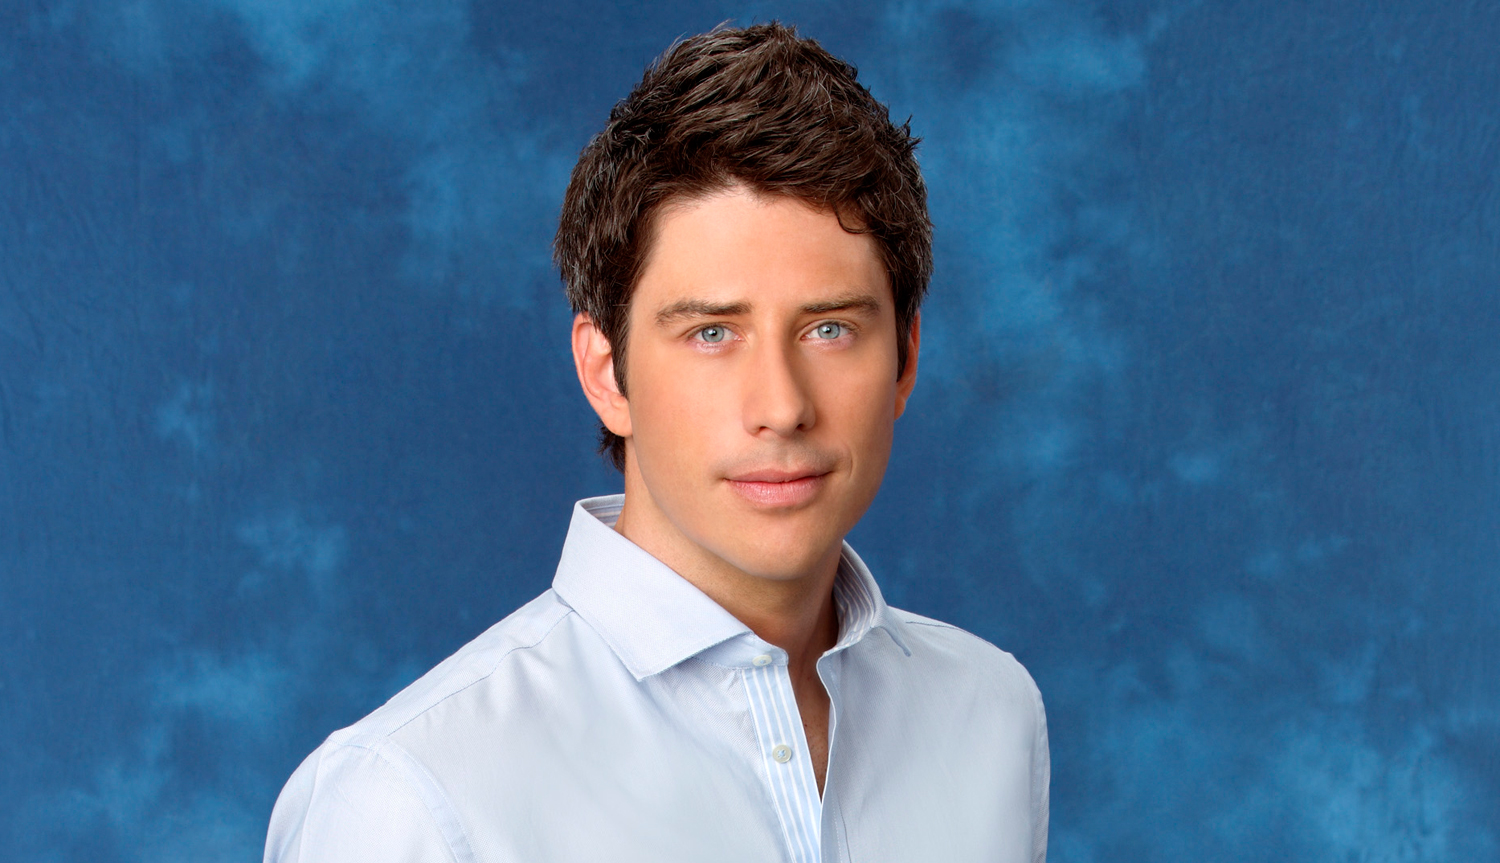 Arie bachelorette dating